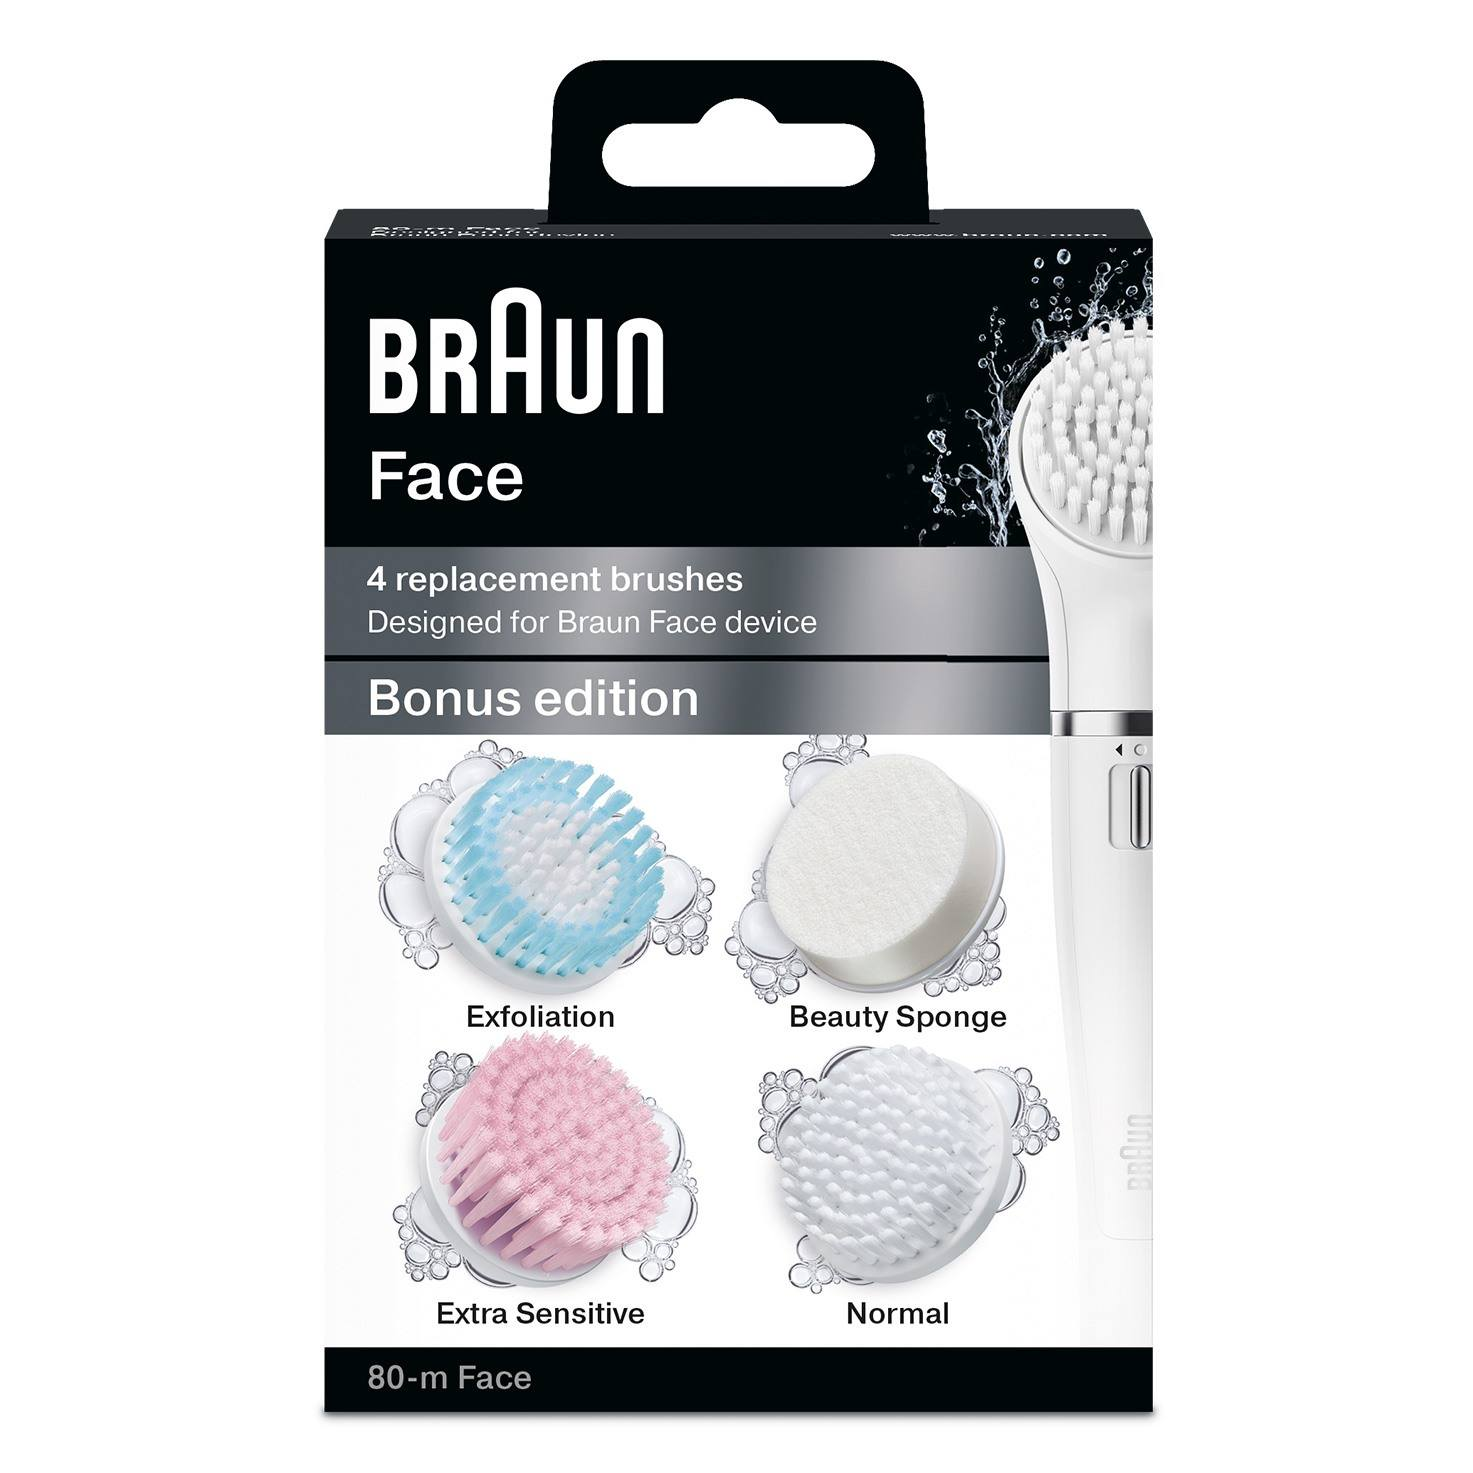 Braun facial cleansing brush refill duo pack 80-m packaging